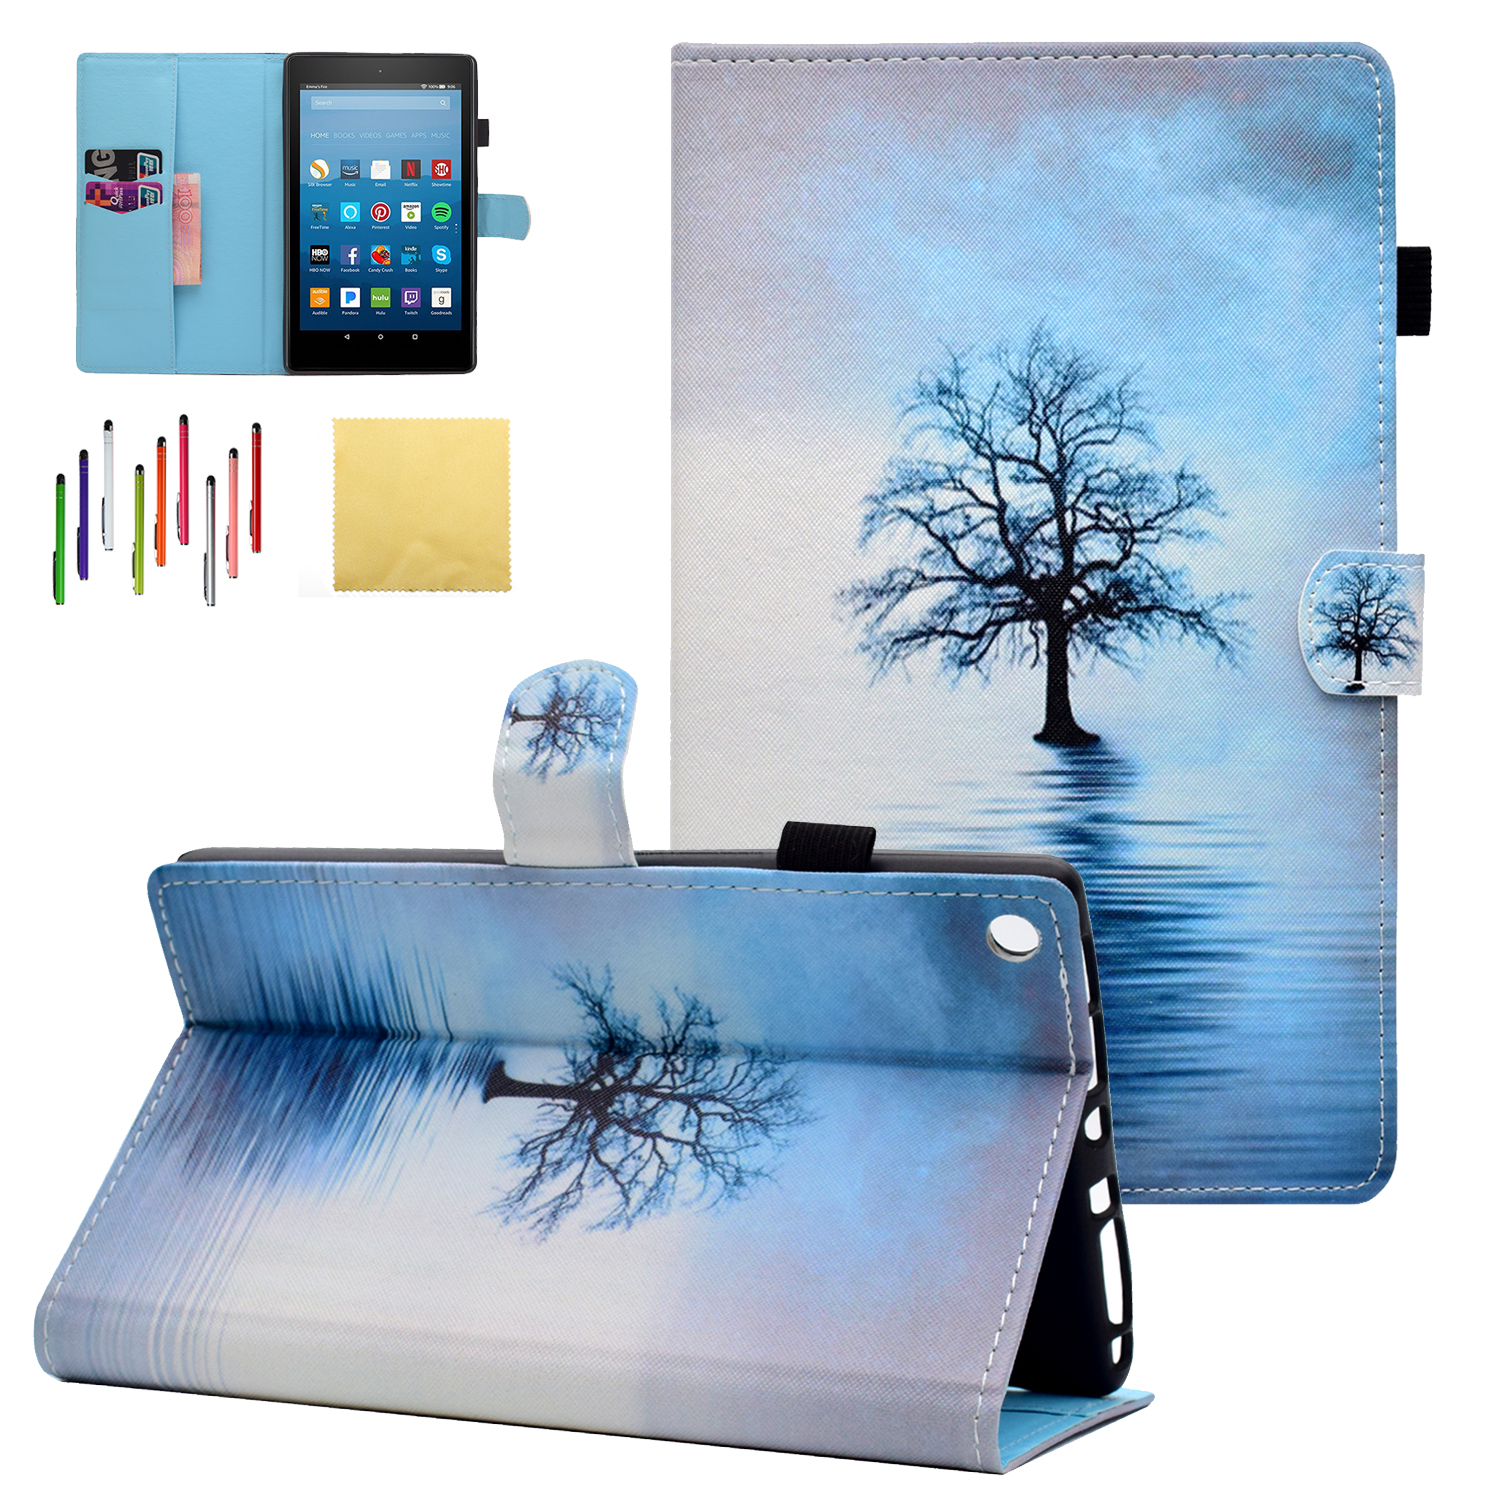 Fire HD 8 2017/ 2016/ 2015 Case, Goodest PU Leather Folio Folding Stand Cover with Pencil Holder Auto Wake Sleep for All-New Amazon Kindle Fire HD 8 Tablet (5th/ 6th/ 7th Generation), Water Cat